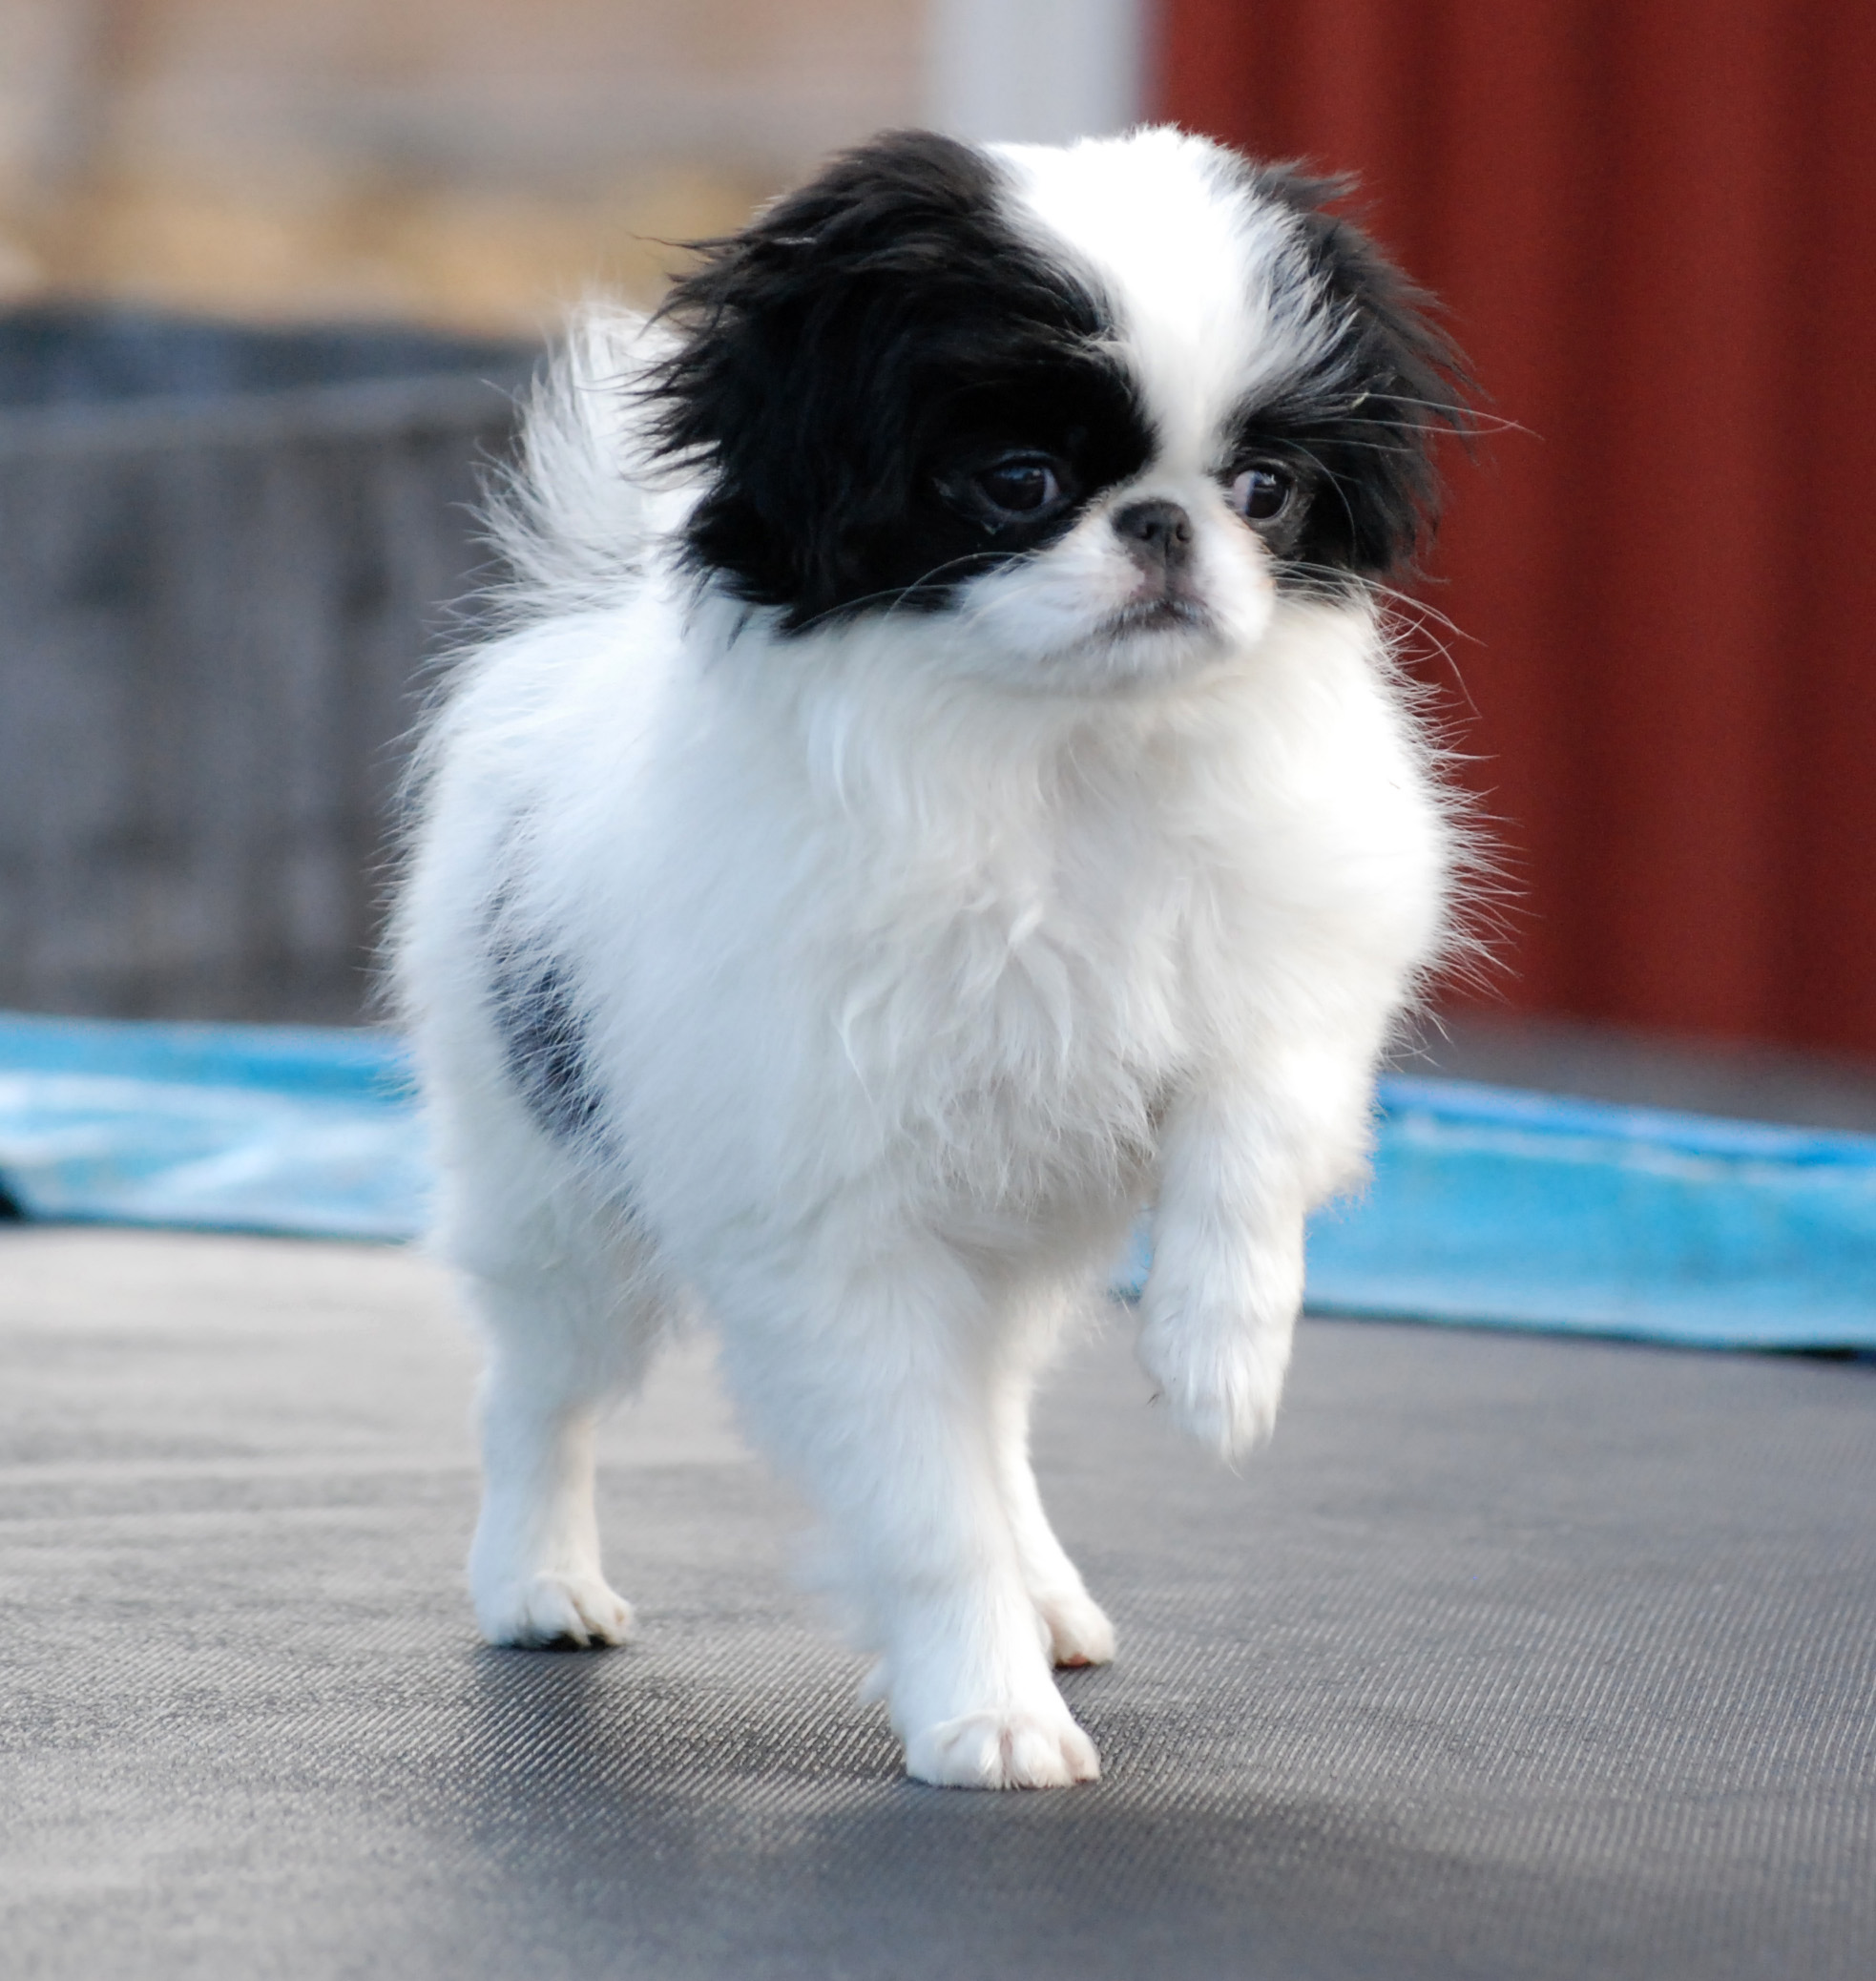 Walking Japanese Chin dog  wallpaper